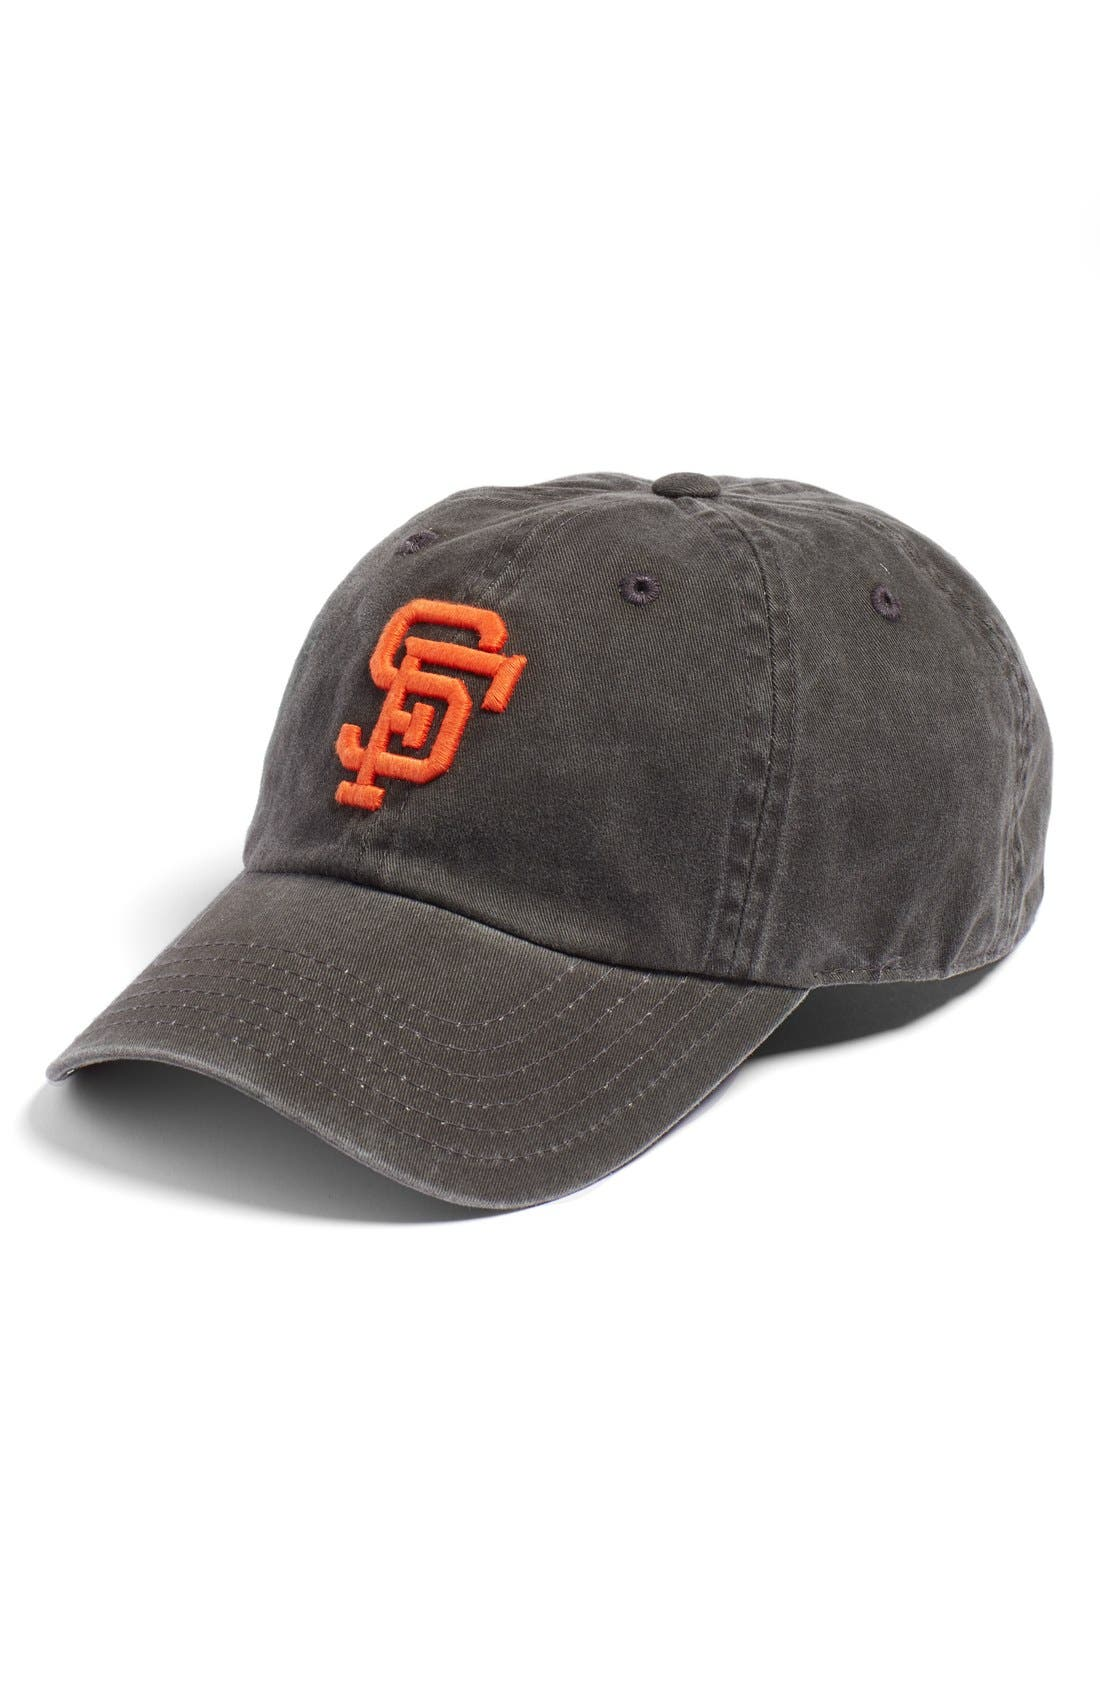 New Raglan San Francisco Giants Baseball Cap,                             Main thumbnail 1, color,                             400